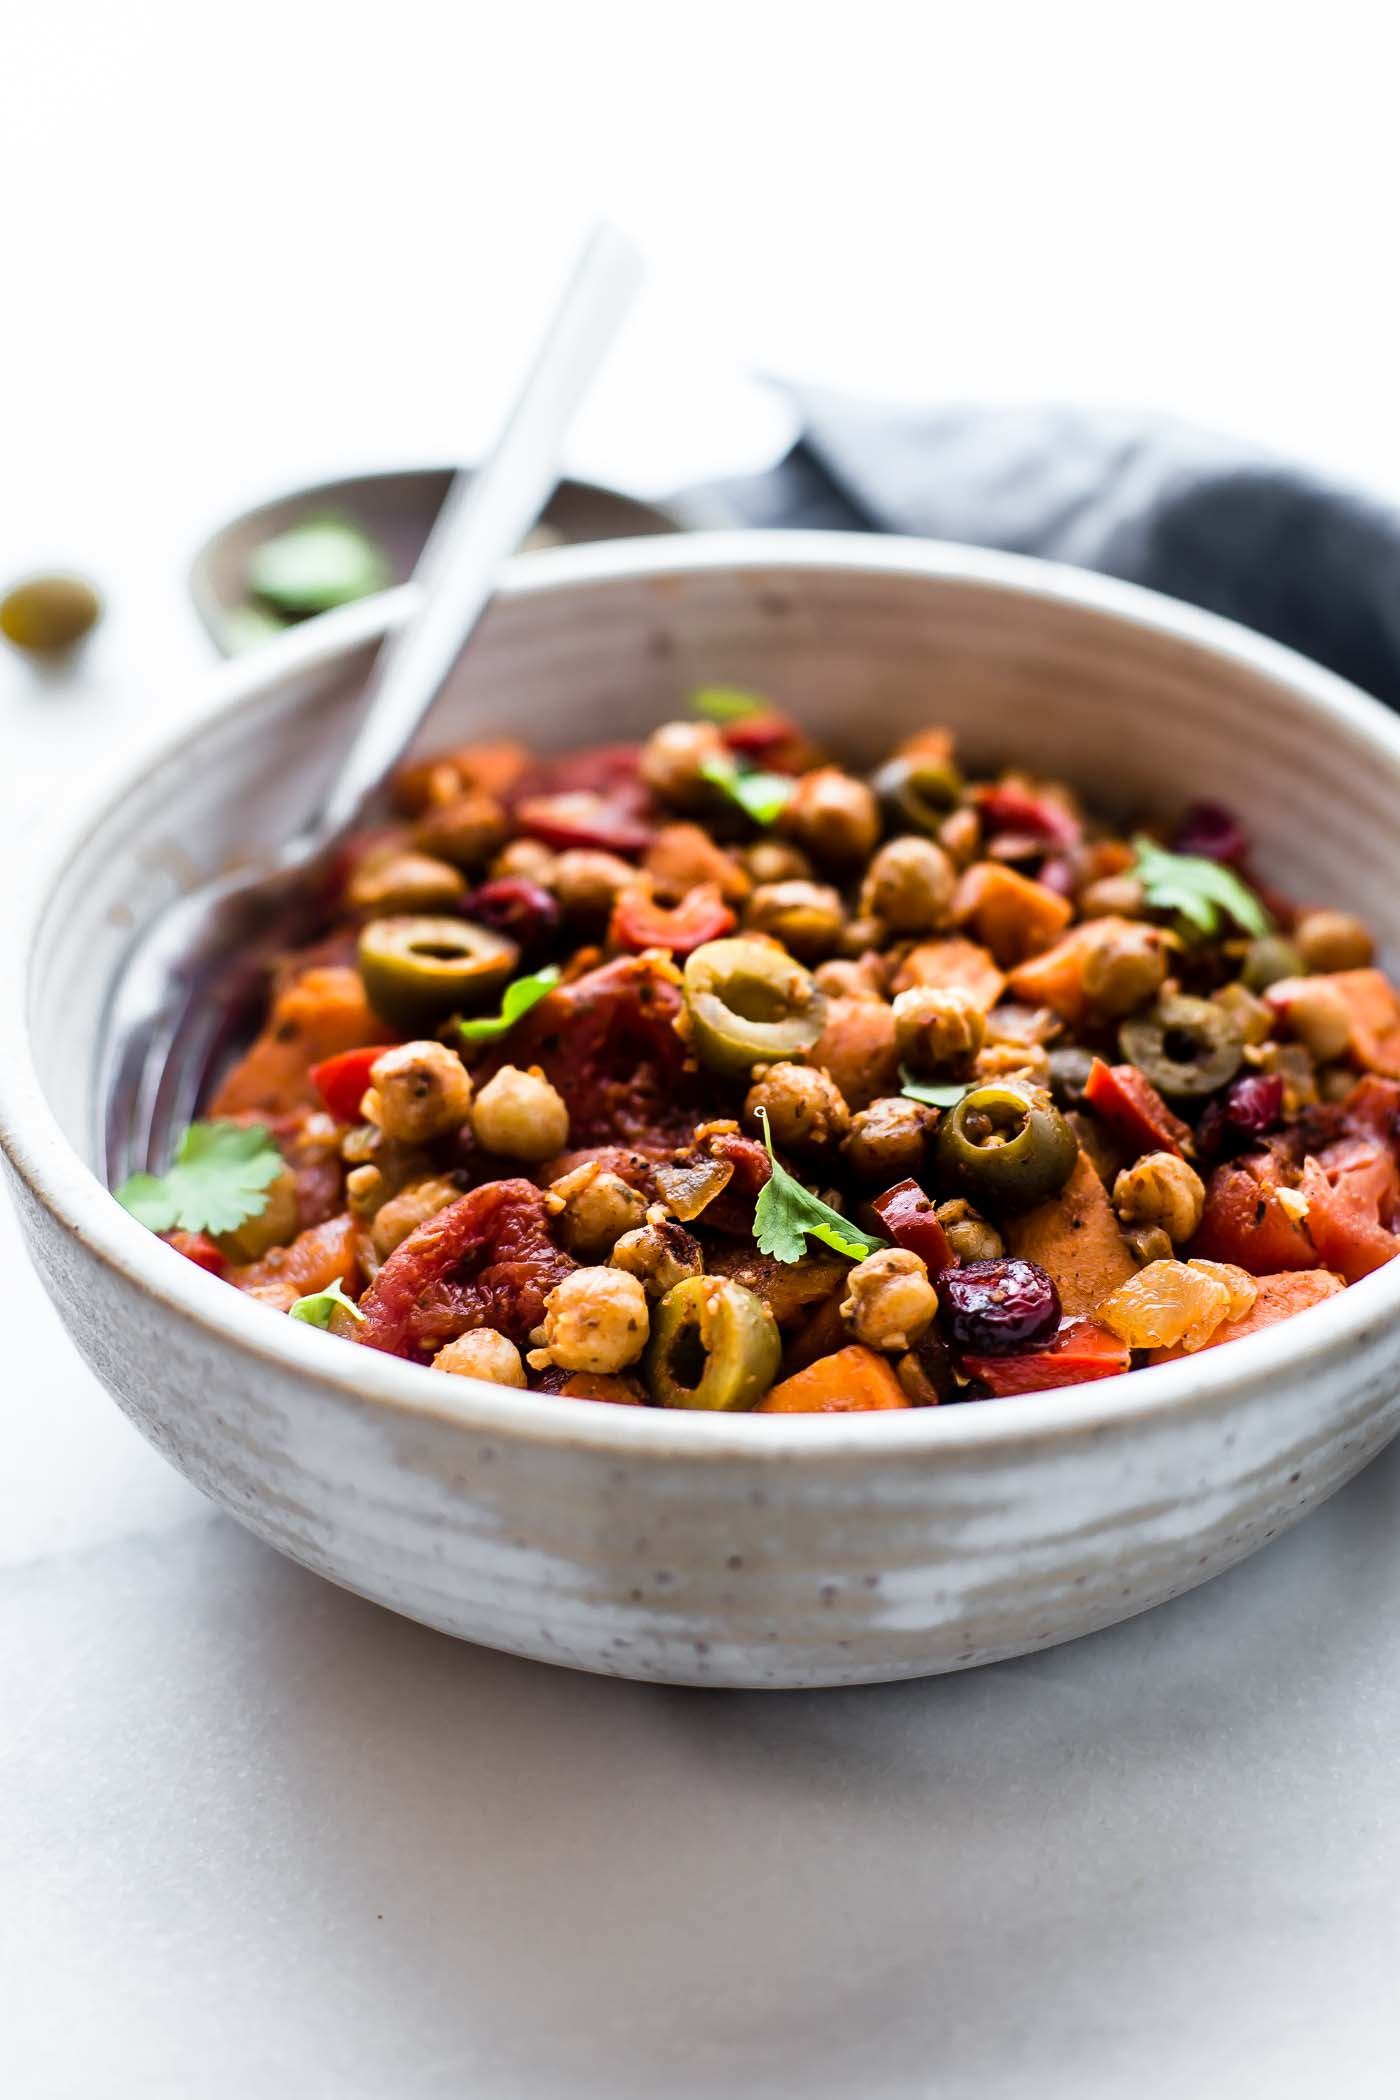 These Cuban Sweet Potato Picadillo Bowls make for a wholesome Latin-inspired weeknight meal! This vegan picadillo recipe is the perfect combo of sweet and savory. Stewed Tomatoes, roasted chickpeas, sweet potatoes, olives, raisins, and spices! Simple healthy ingredients made into a flavorful one pot meal. Gluten free, grain free, EASY!